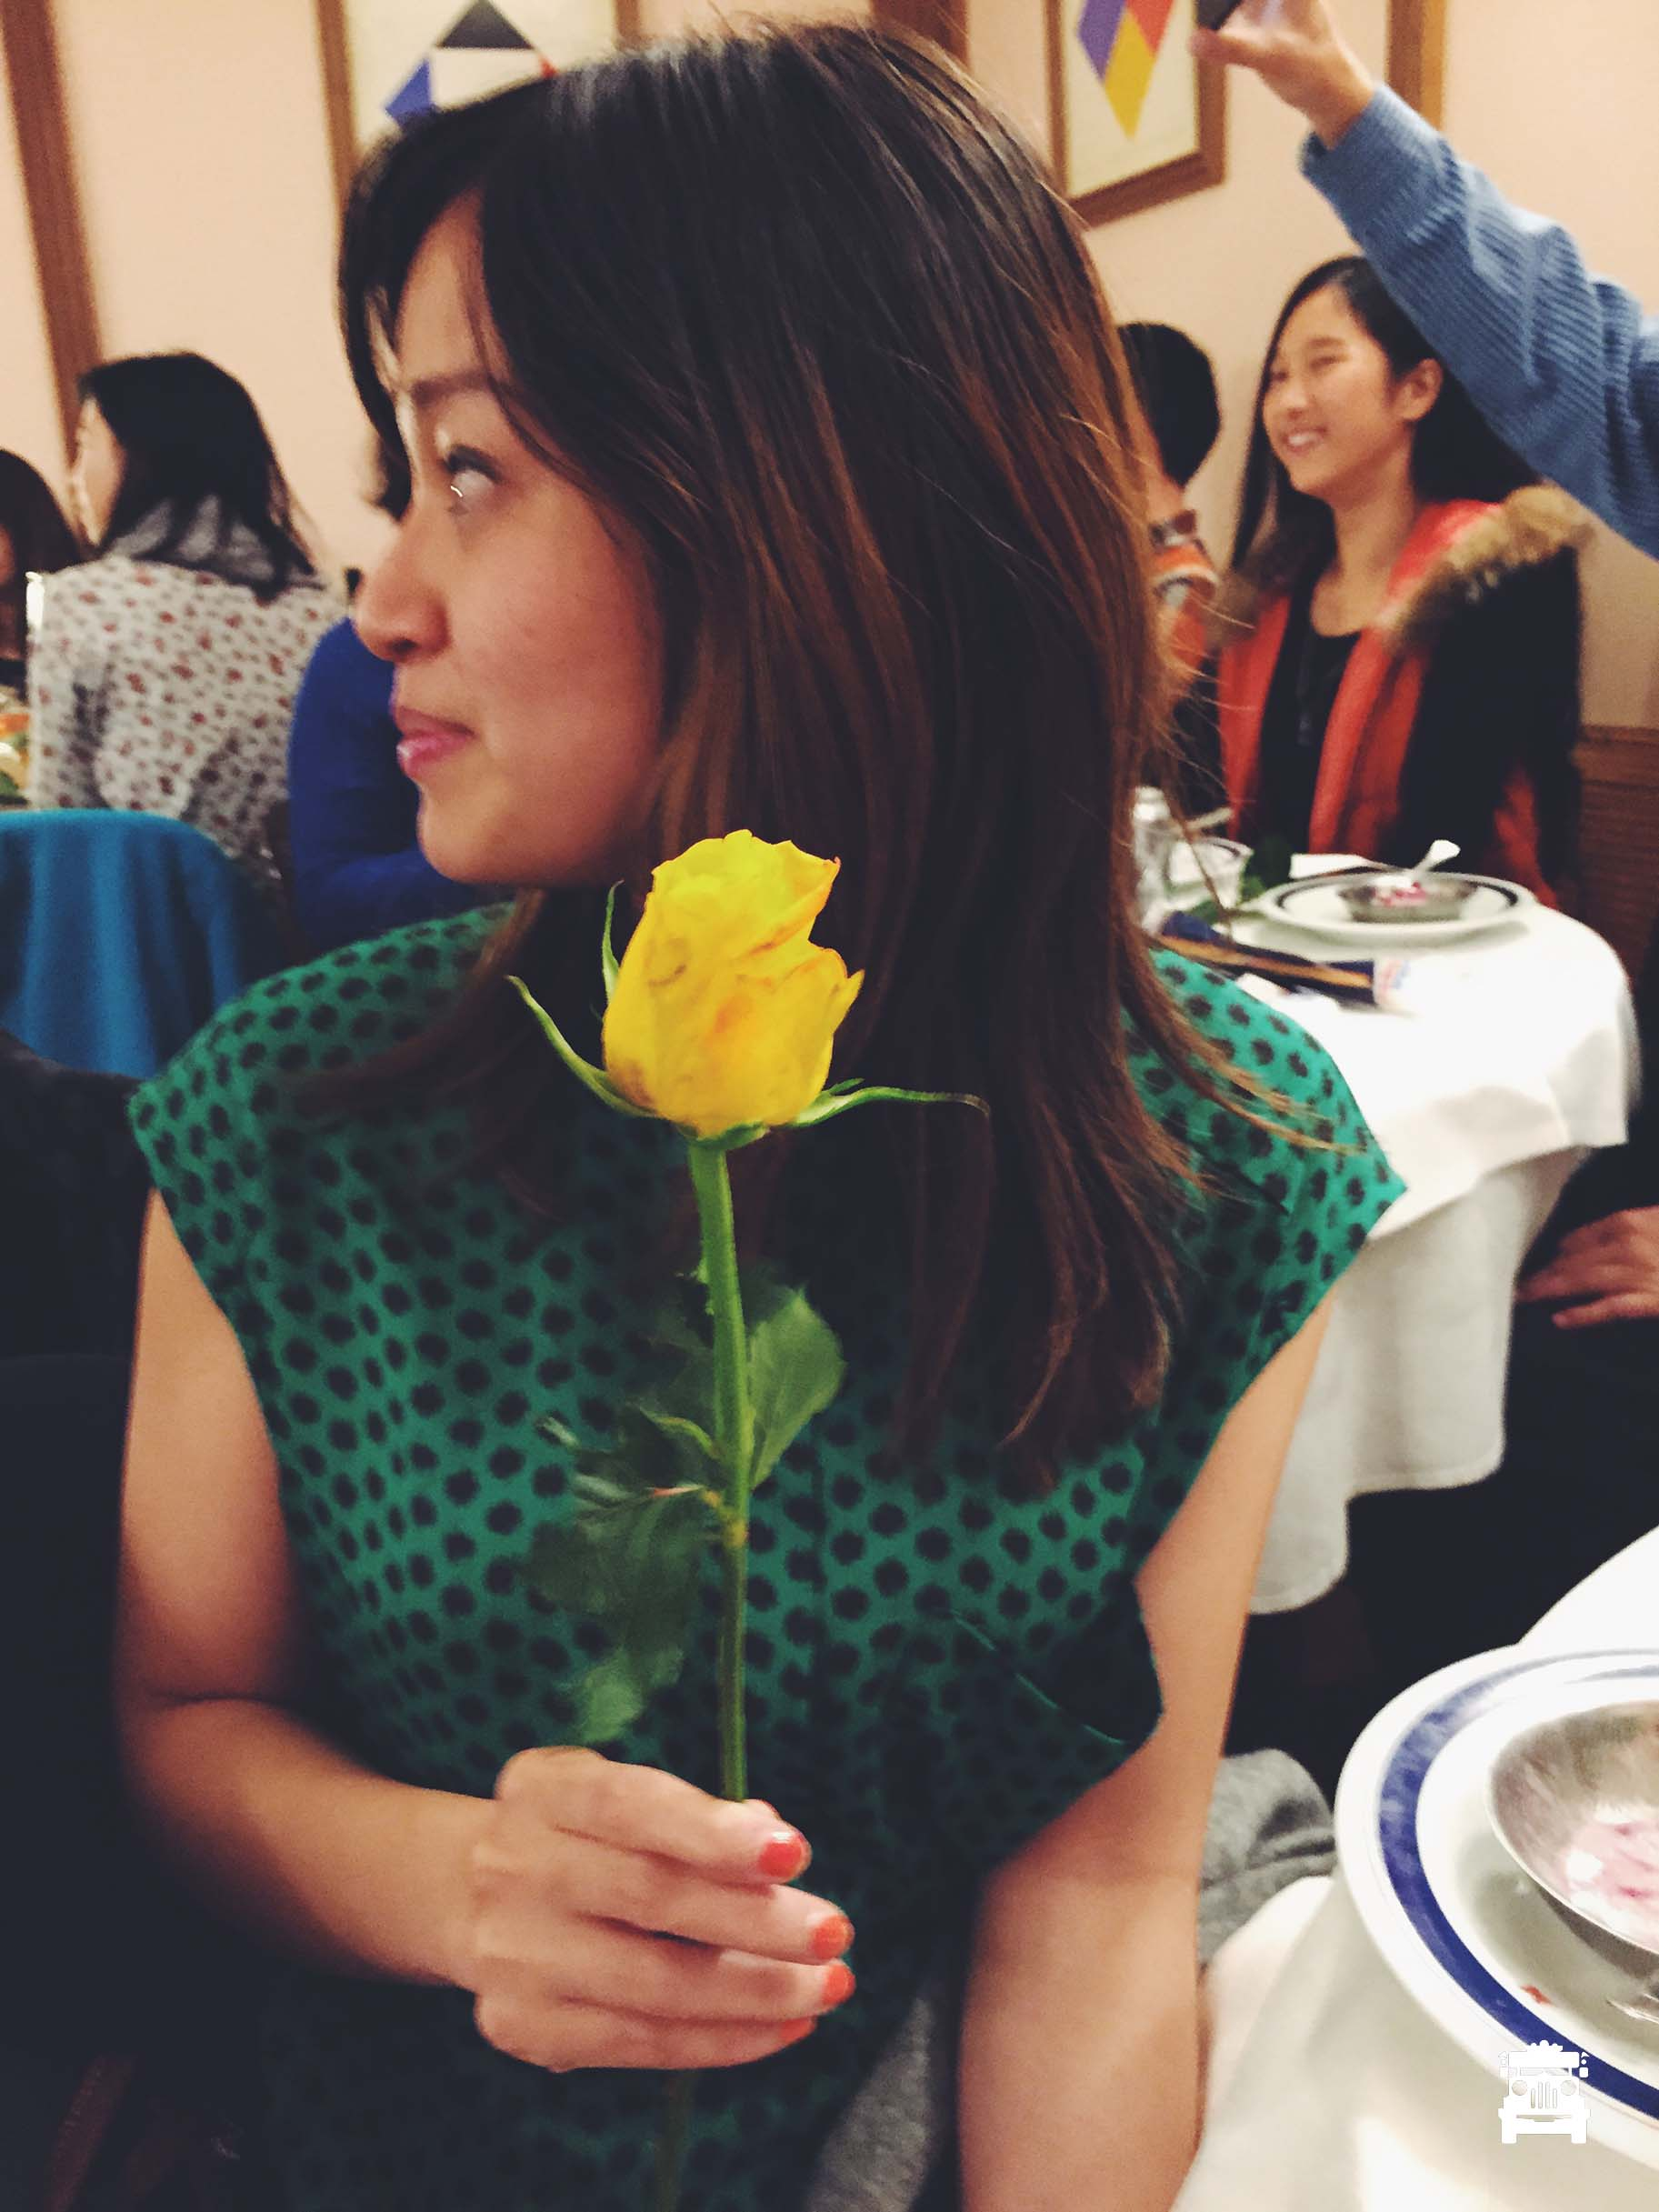 A rose for the lady :)